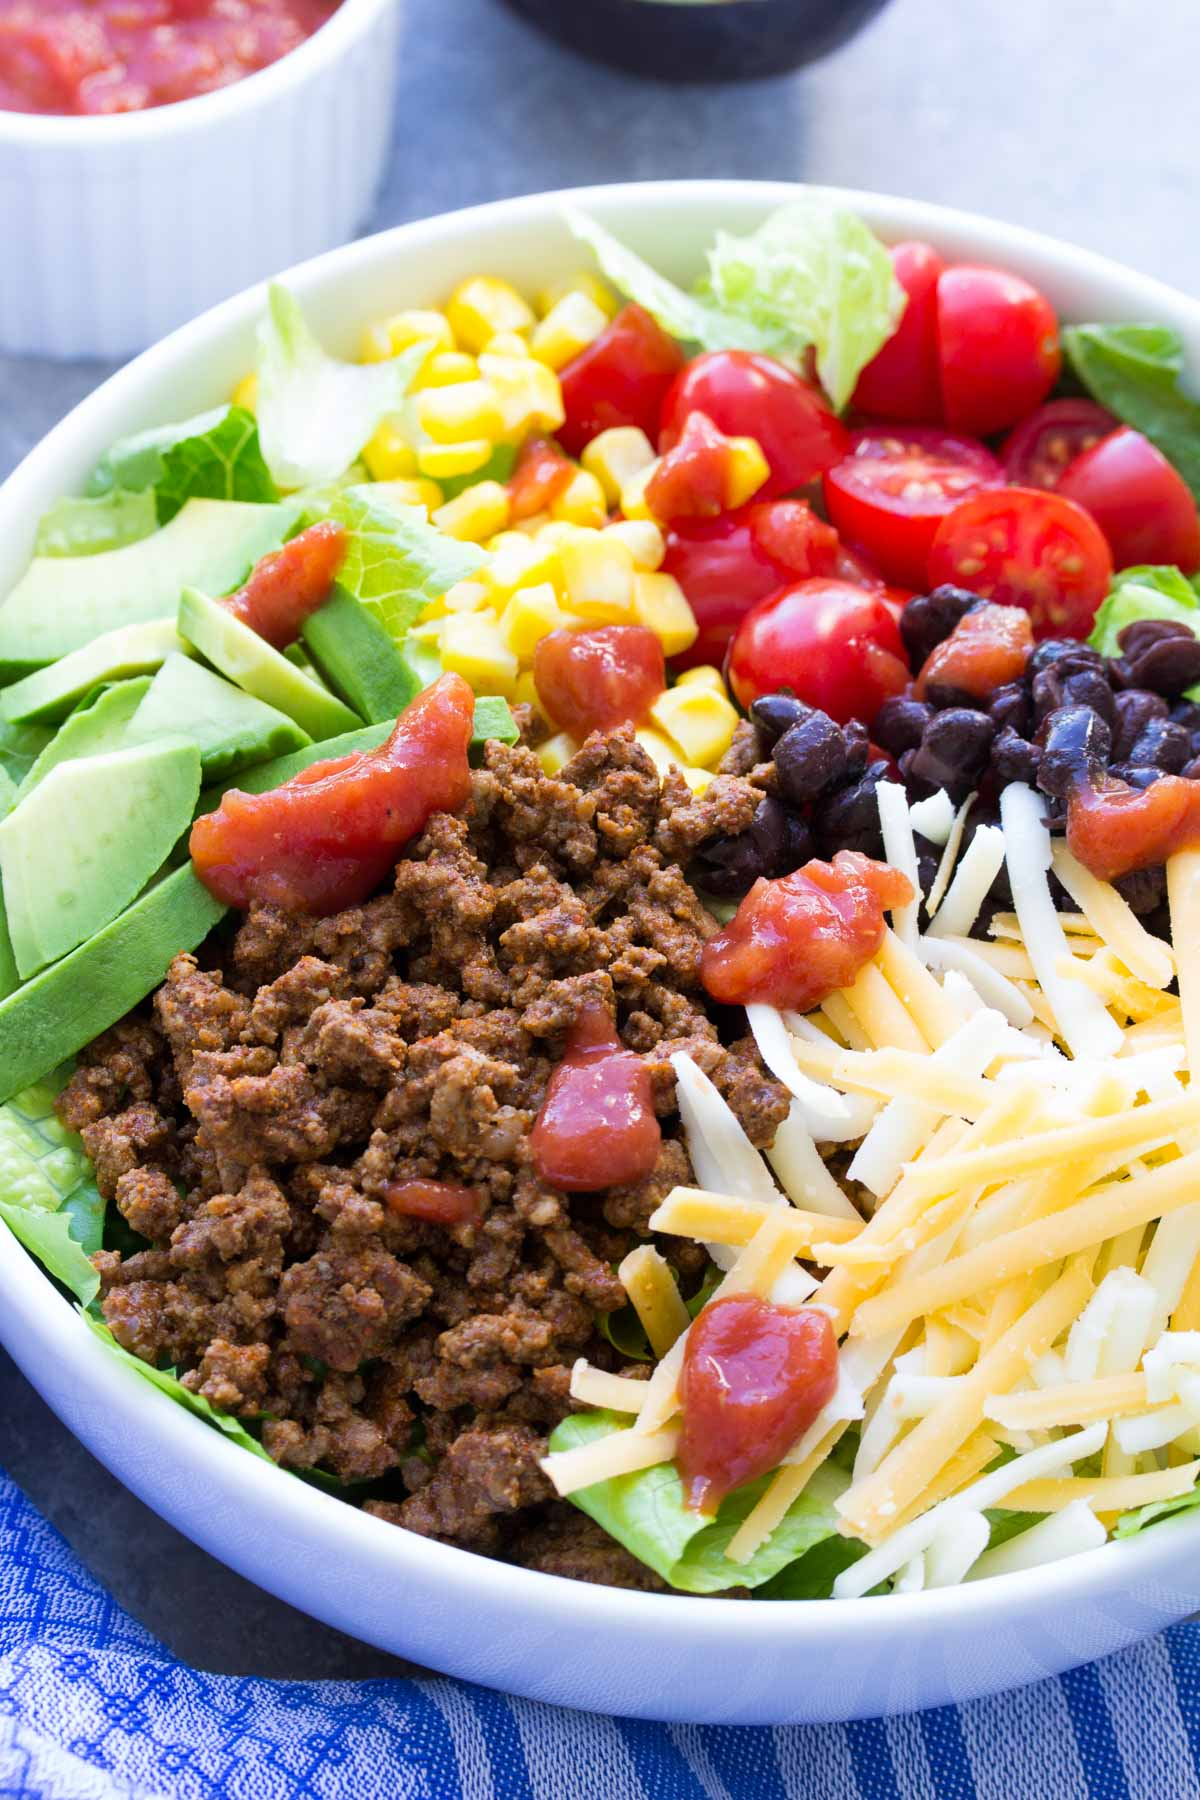 taco salad with ground beef served in a white bowl